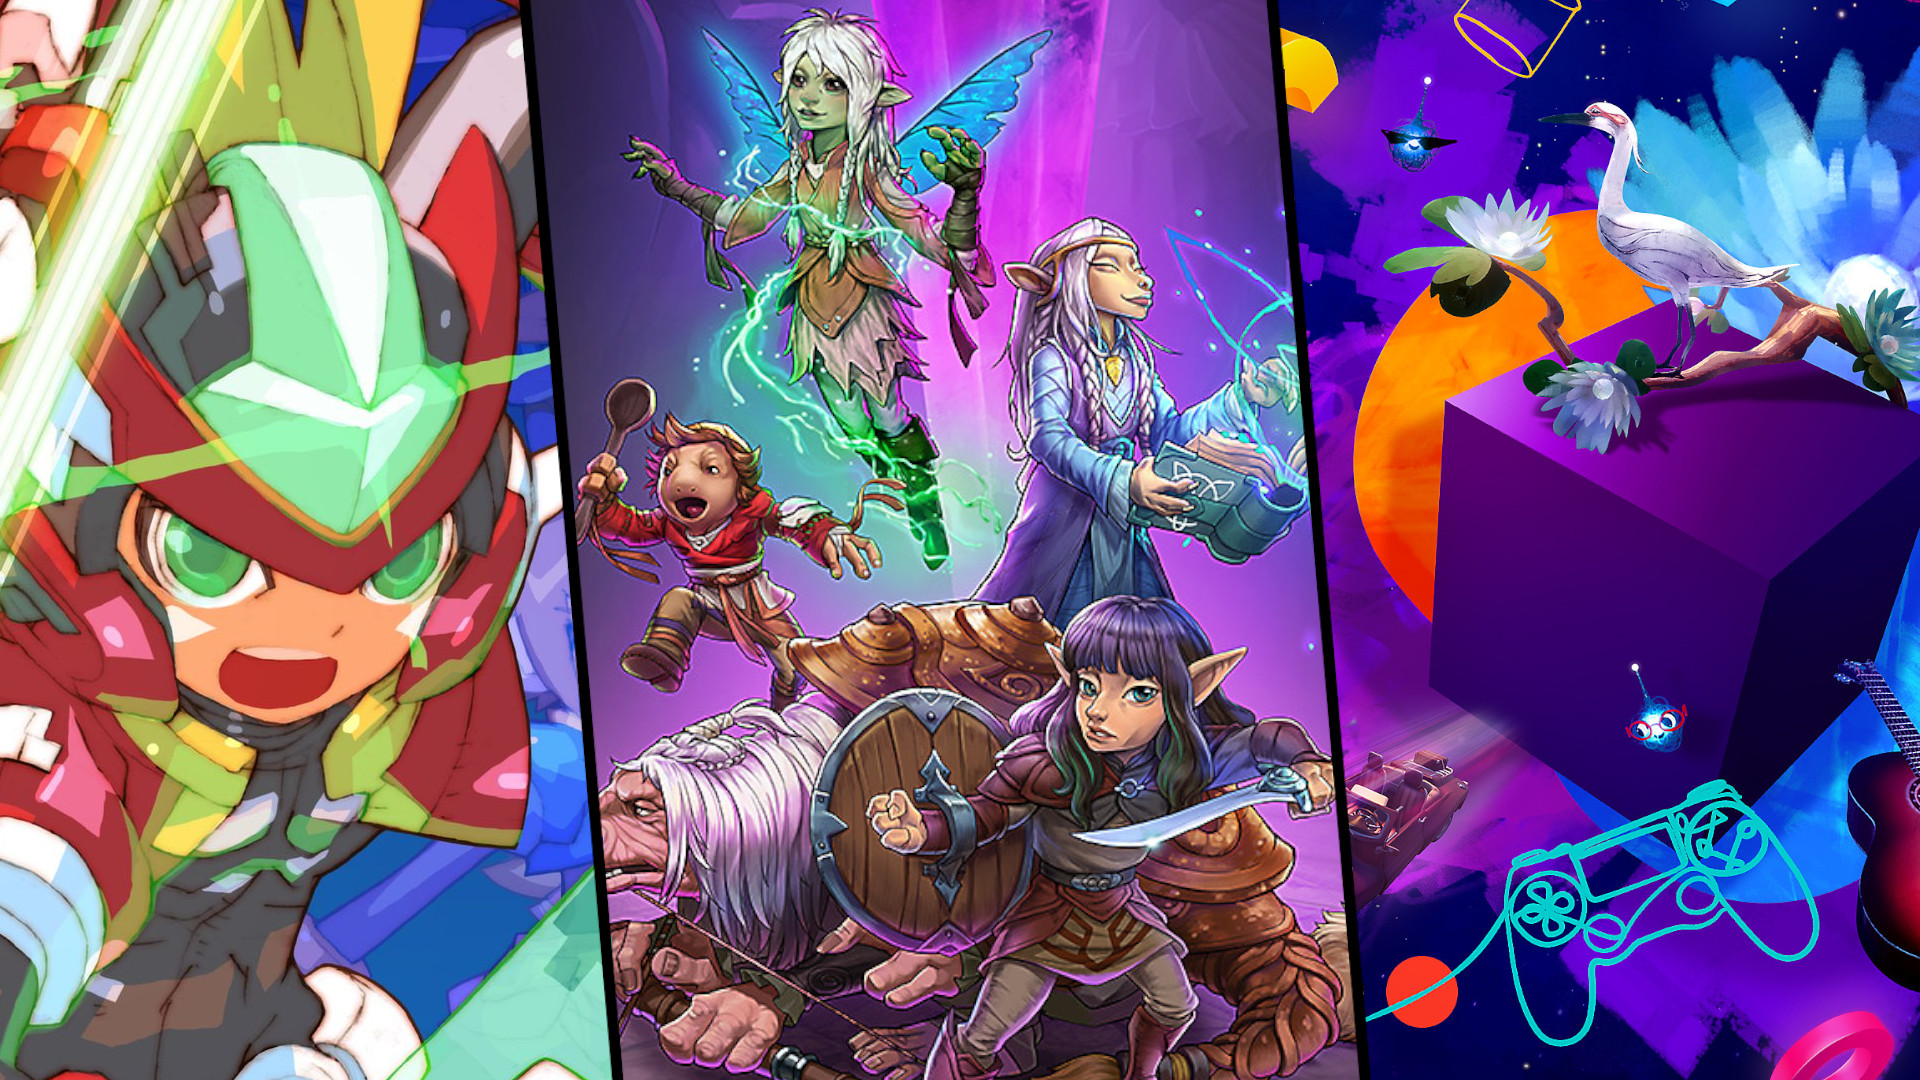 3 Single Player Games February 2020, Dreams, The Dark Crystal: Age of Resistance Tactics, Mega Man Zero/ZX Legacy Collection